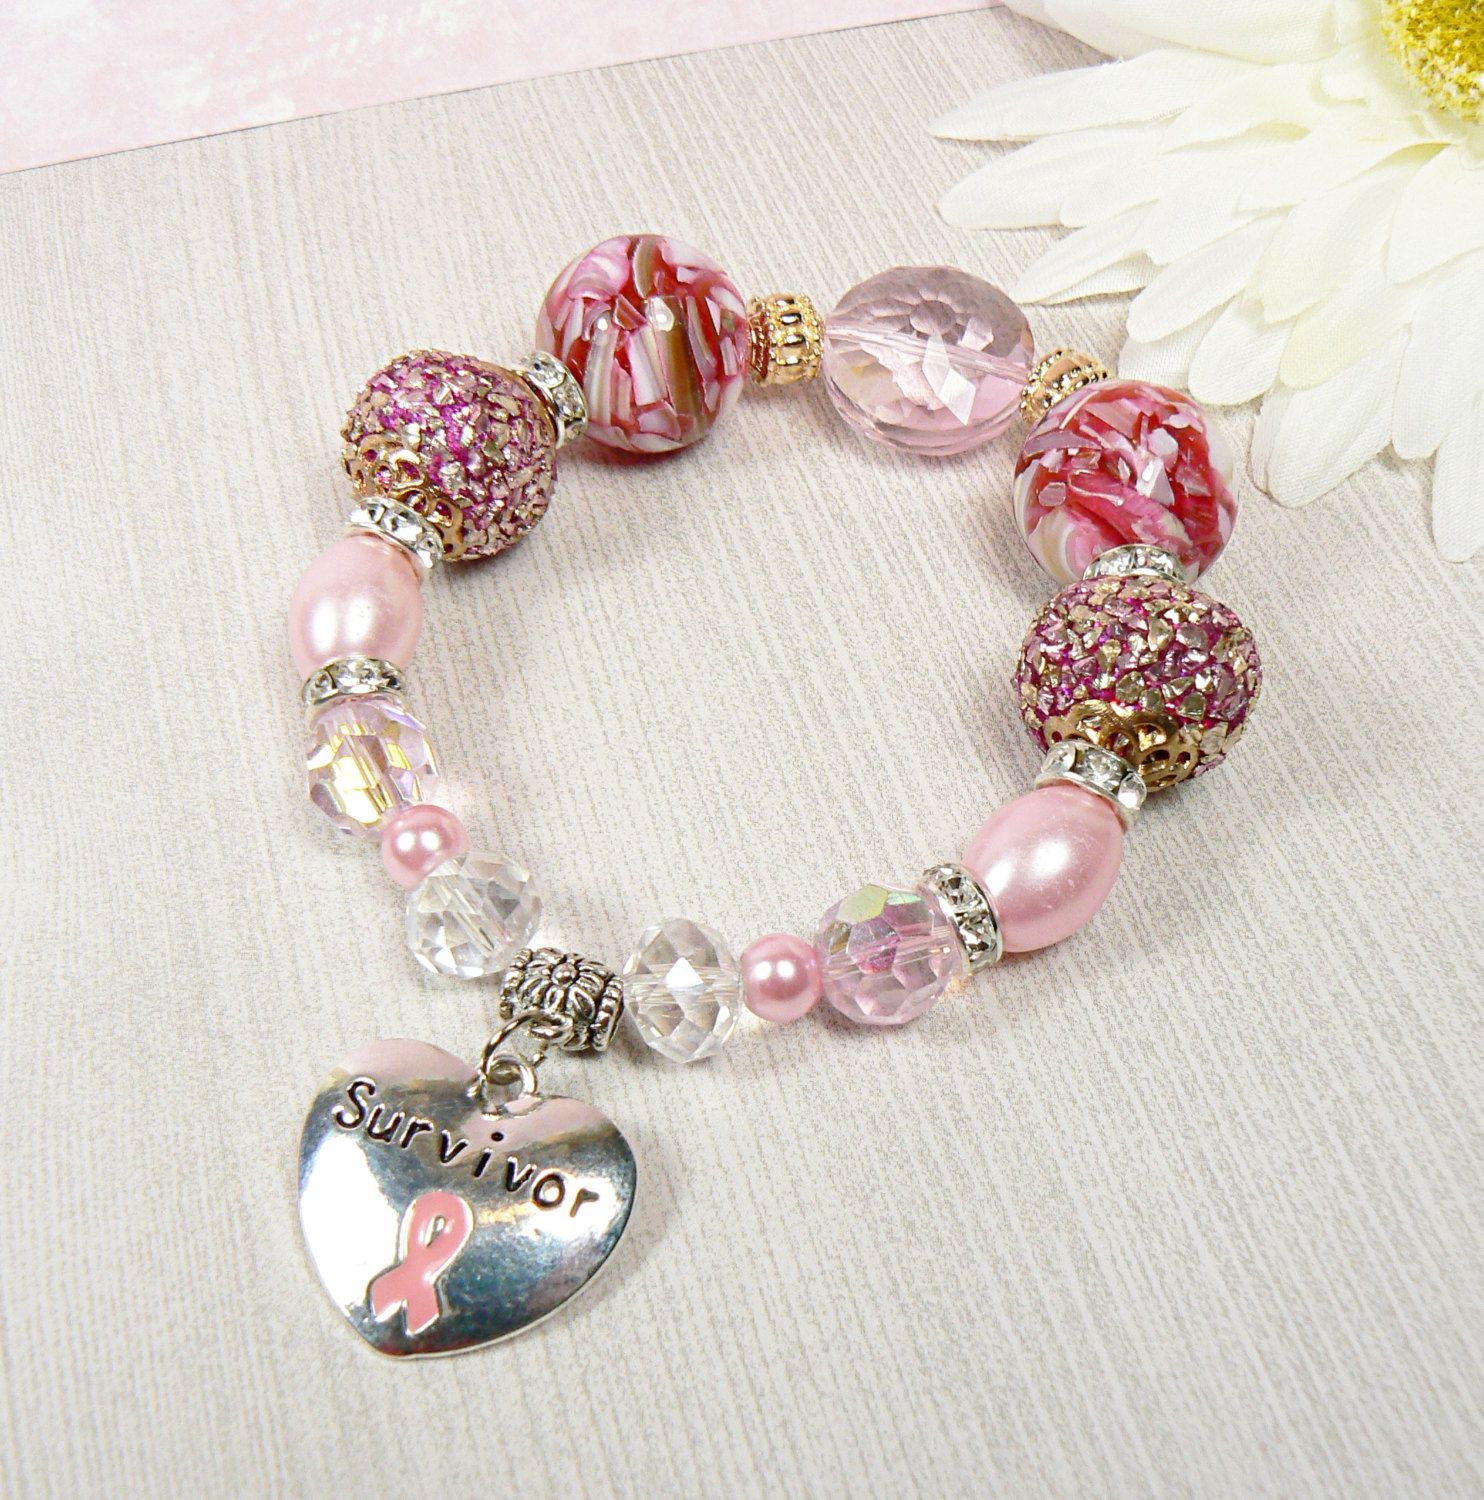 collections touched products my cancer breast bracelet survivor cuffs booby